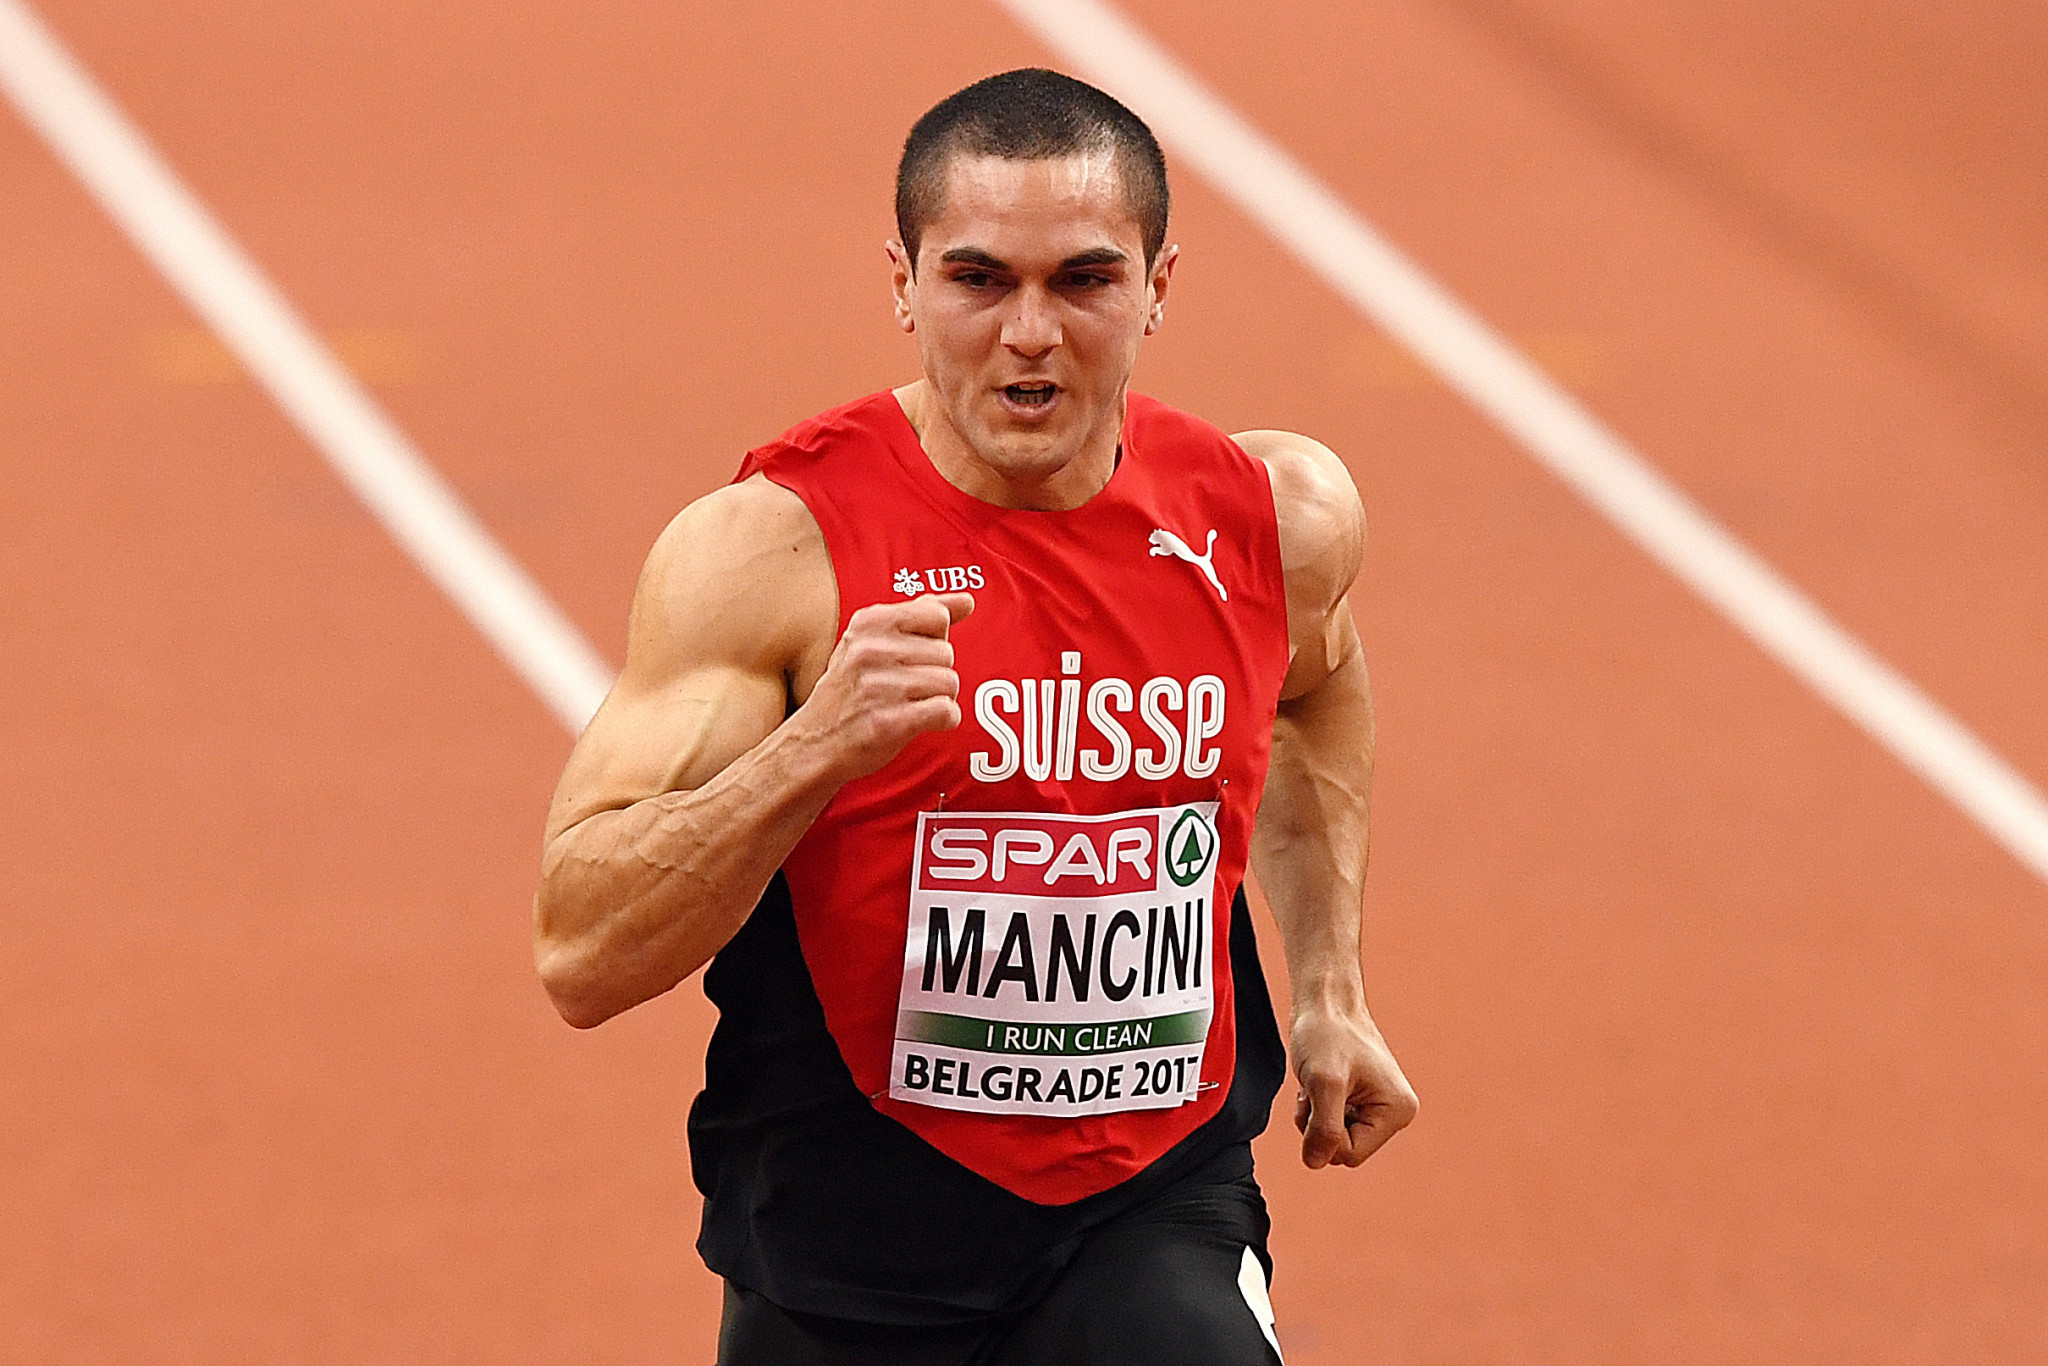 Italian set to miss European Athletics Championships after alleged racist attack, Swiss drop sprinter after racist post